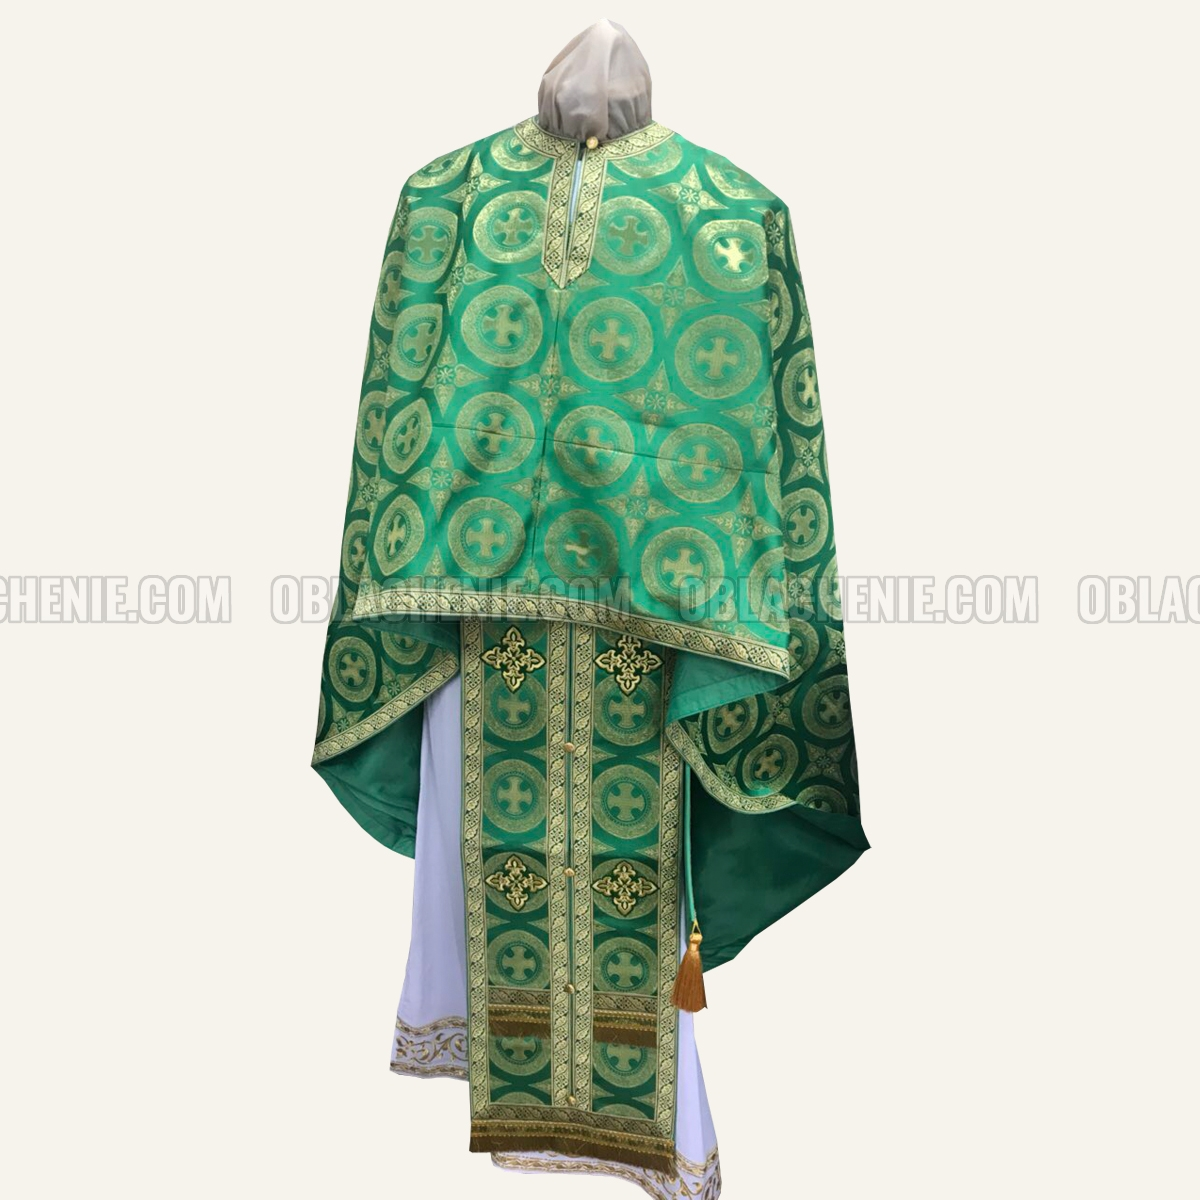 Priest's vestments 10137